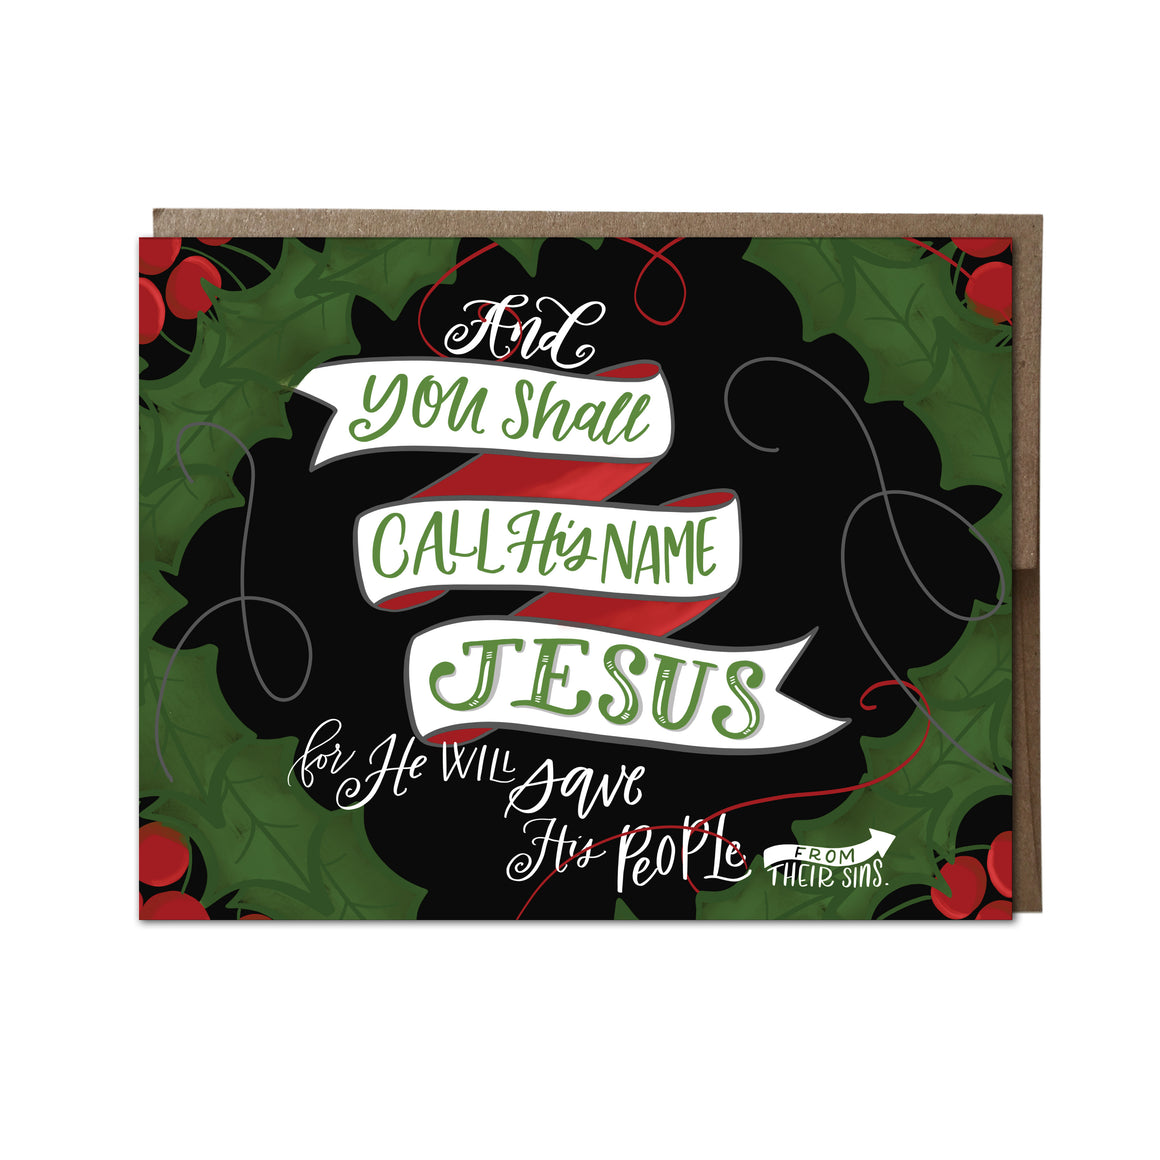 """Call His Name Jesus"" card"